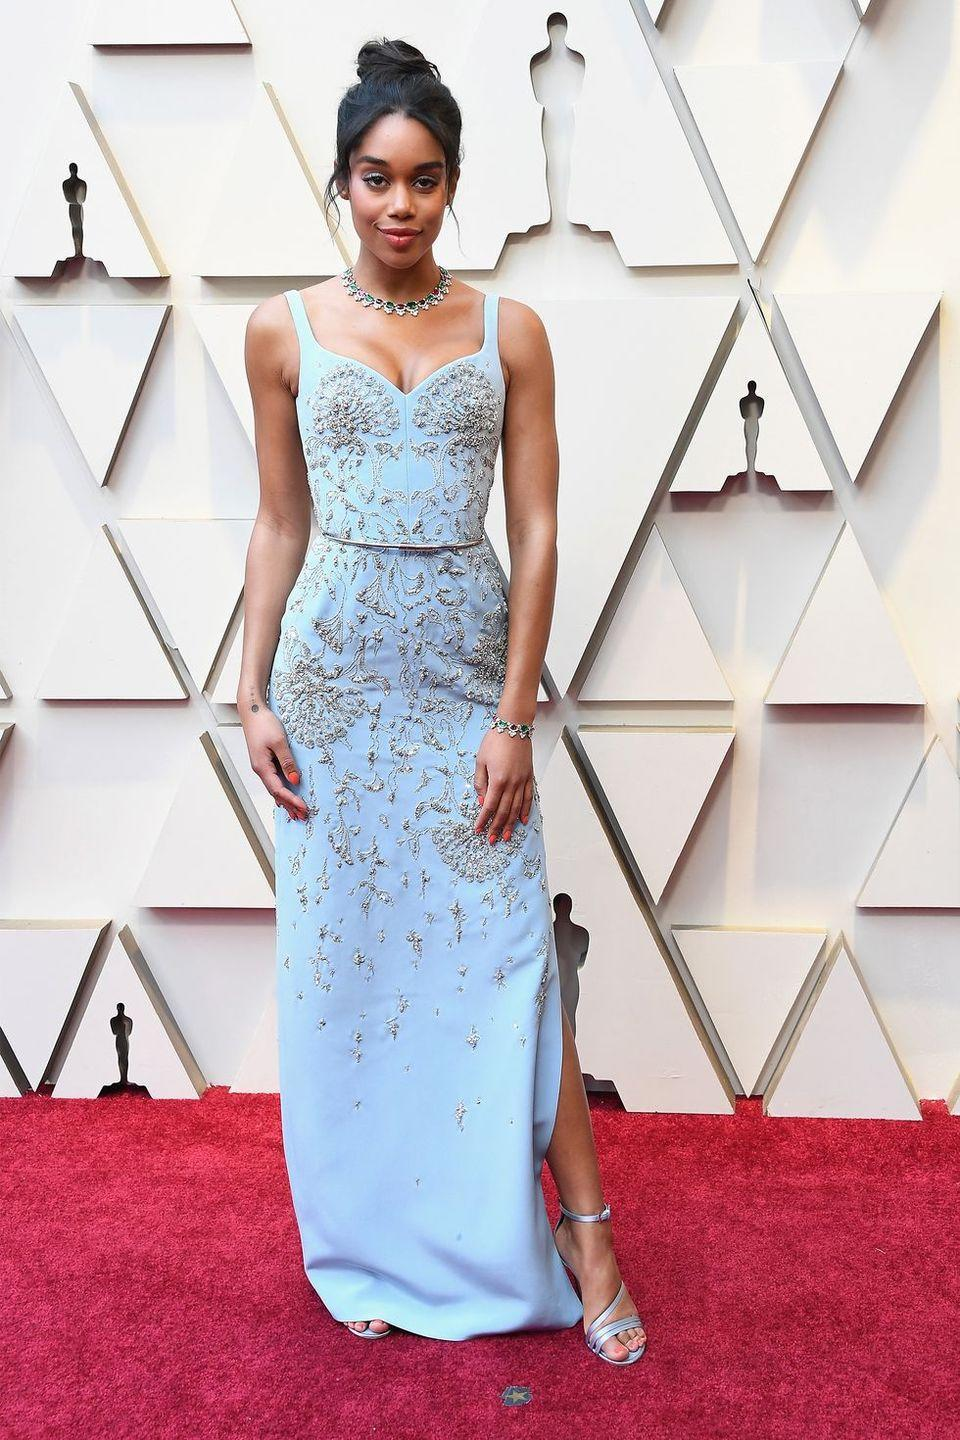 <p>Laura Harrier brought the capital F fashion to the red carpet in an ethical and eco-responsible Louis Vuitton creation. The gown was custom made in silk, embroidered with glass beads, Swarovski crystal shards, and sequins.</p>